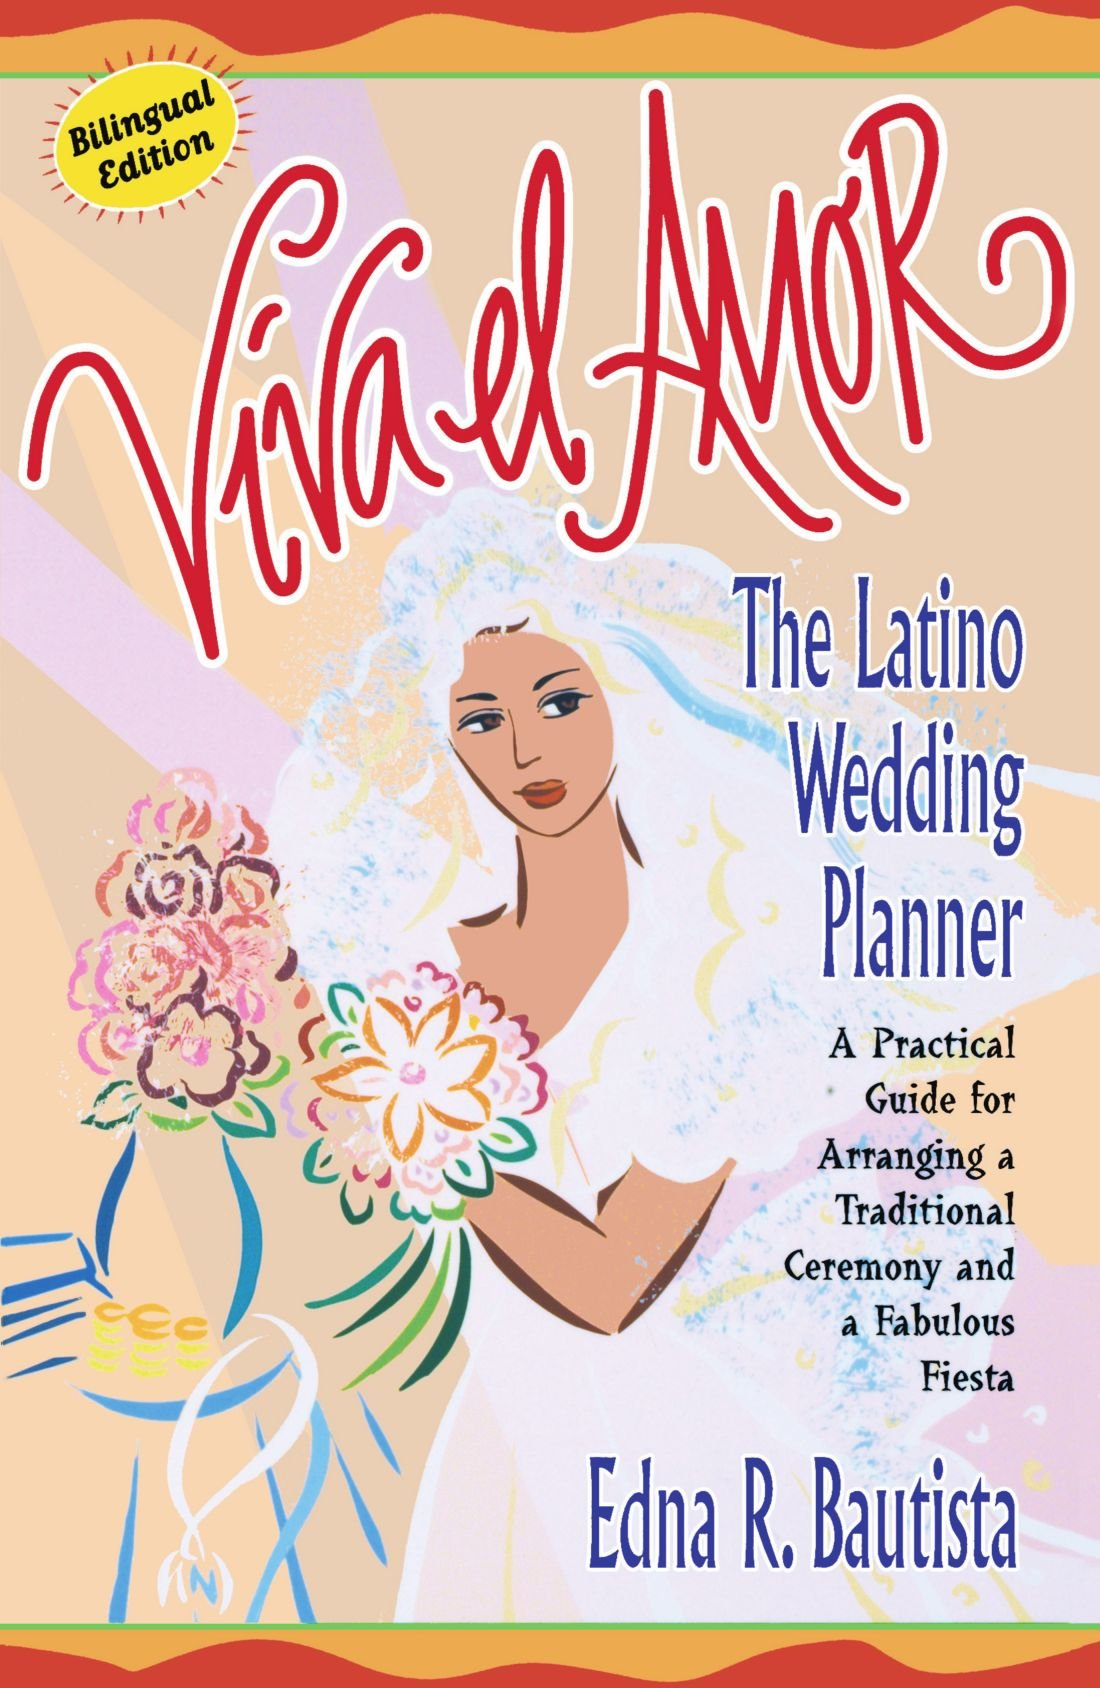 Viva el amor: The Latino Wedding Planner, A Practical Guide for Arranging a Traditional Ceremony and a Fabulous Fiesta by Touchstone